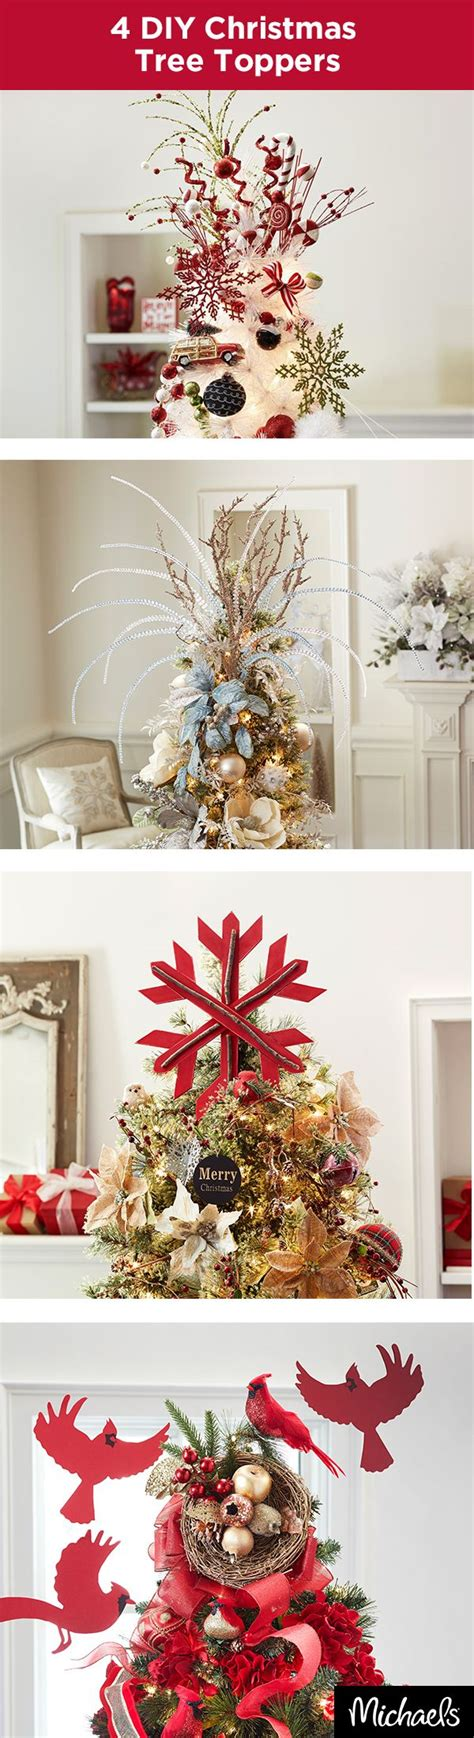 christmas tree toppers images  pinterest